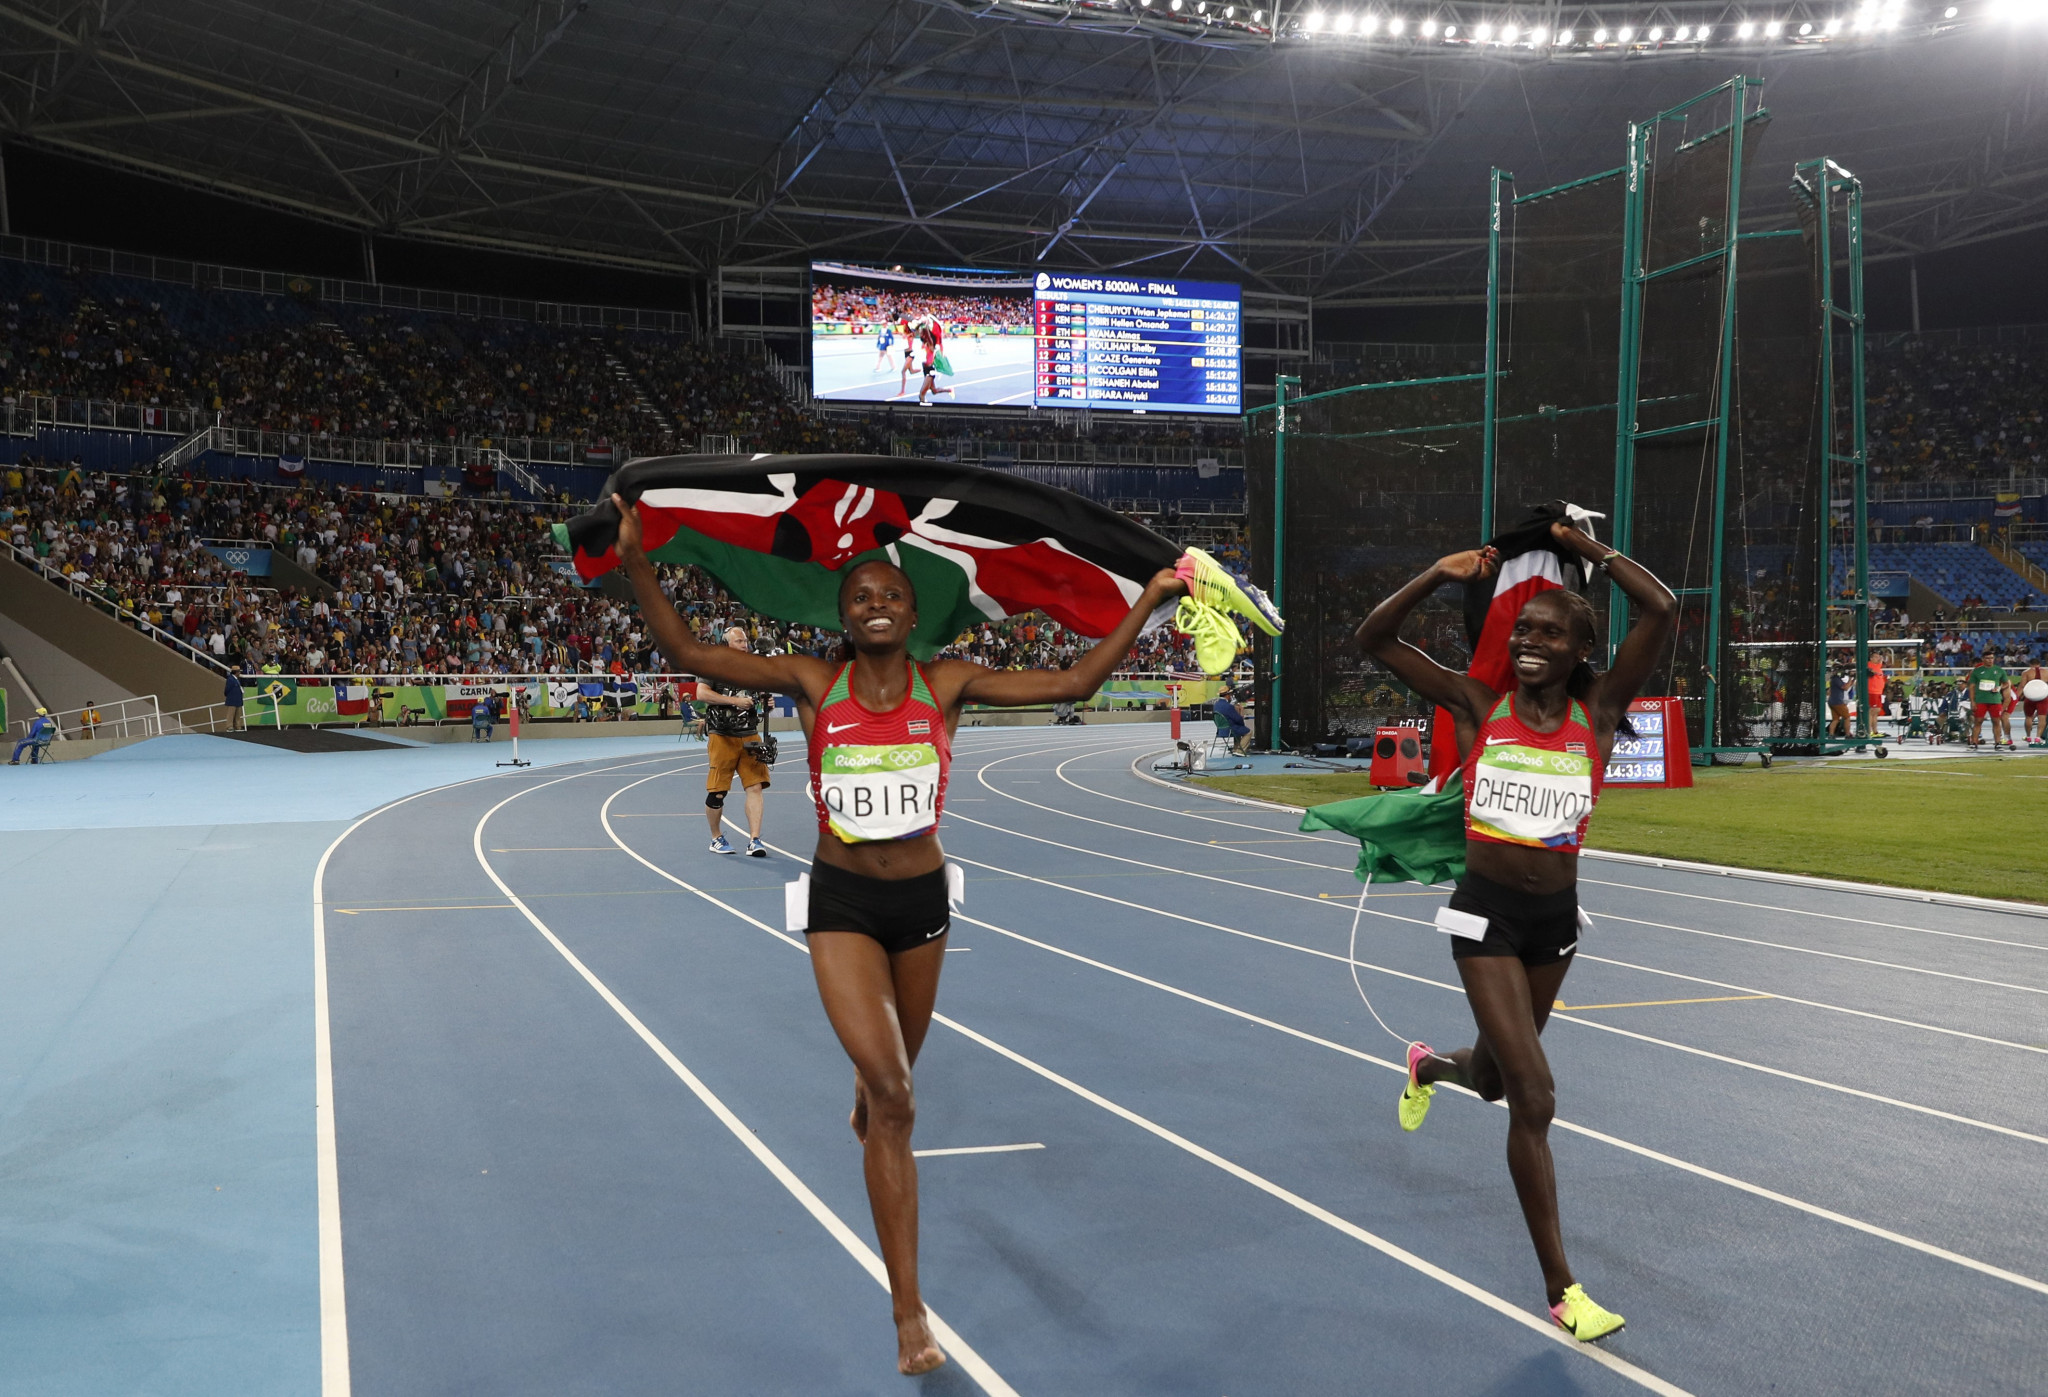 One of the highlights of Kenya from Rio 2016 was the double victory in the women's 5,000 meters - Hellen Obiri (left) took silver and Vivian Cheruiyot took gold © Getty Images